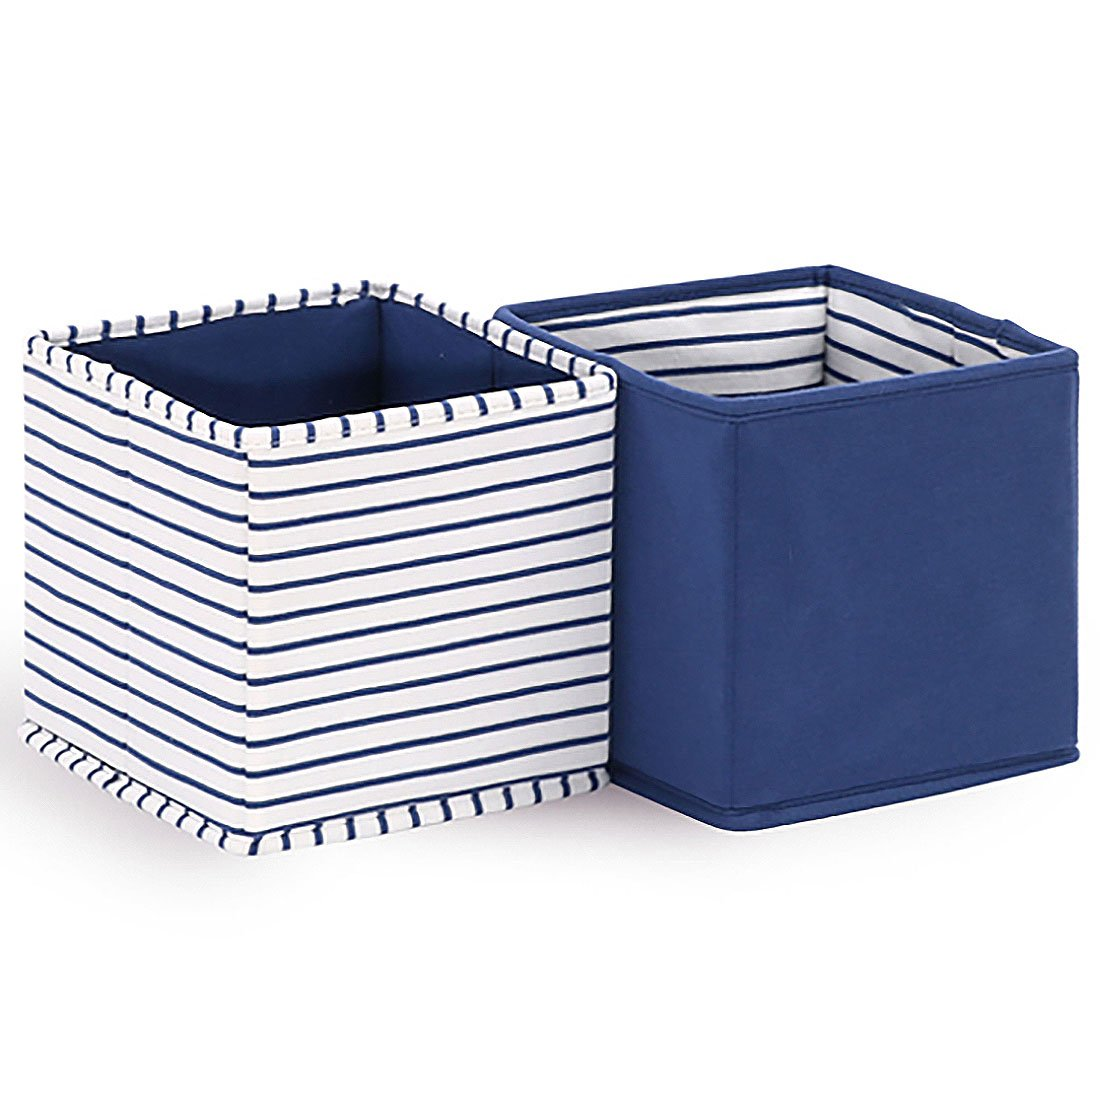 Baby Nursery Storage Cloth Totes/Bins 2-Pack in White and Navy Blue Stripes and Solids - 7 Inch Collapsible Foldable Fabric Cubes for Nursery, Home, or Office Organizer